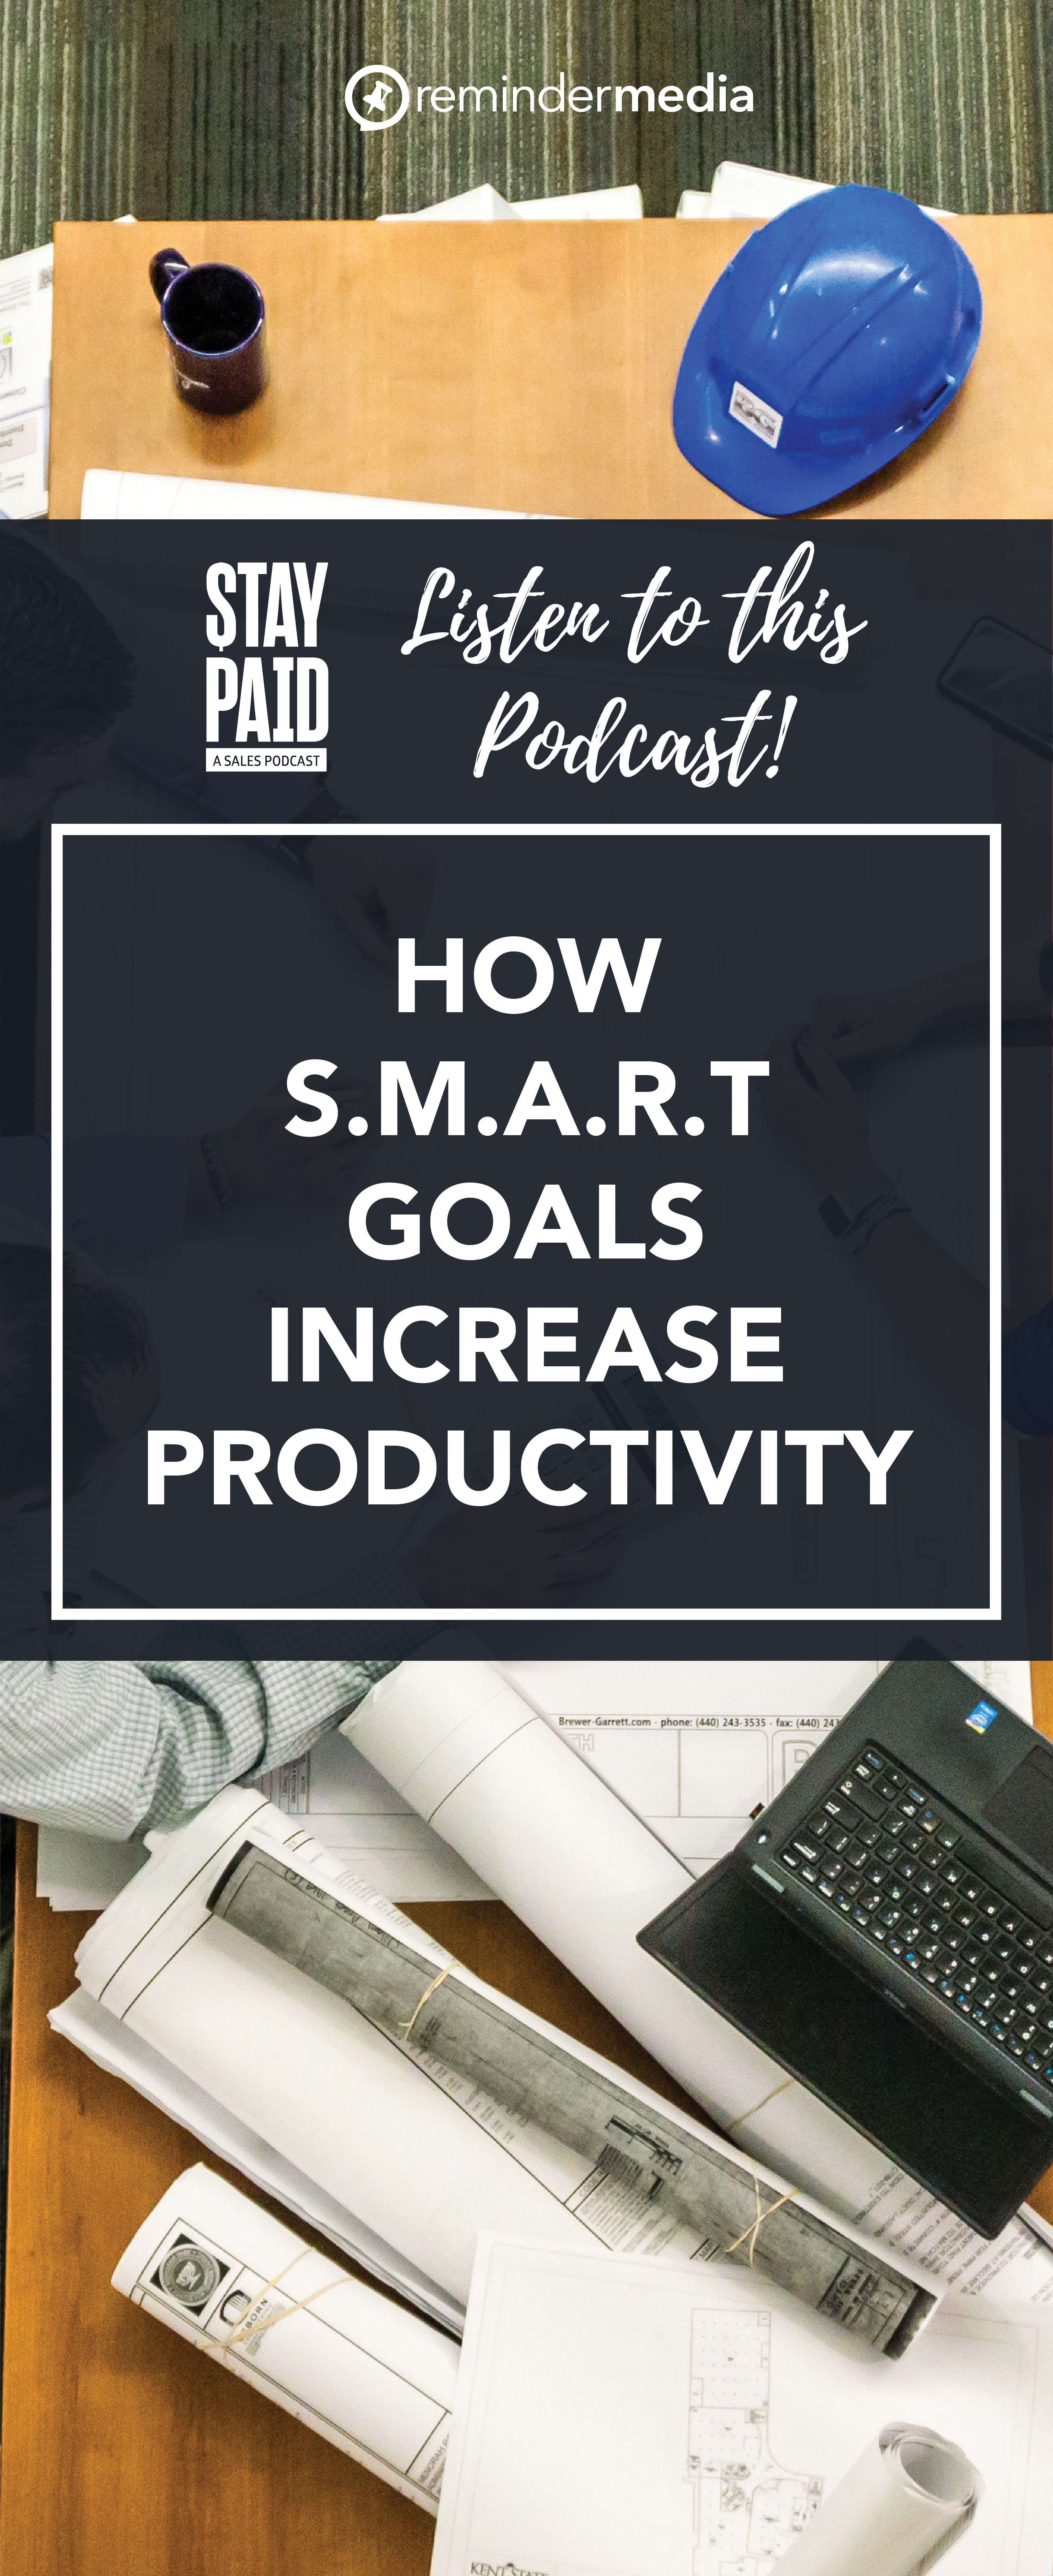 Ep 15 How S M A R T Goals Increase Productivity Remindermedia Smart Goals Goals Increase Productivity